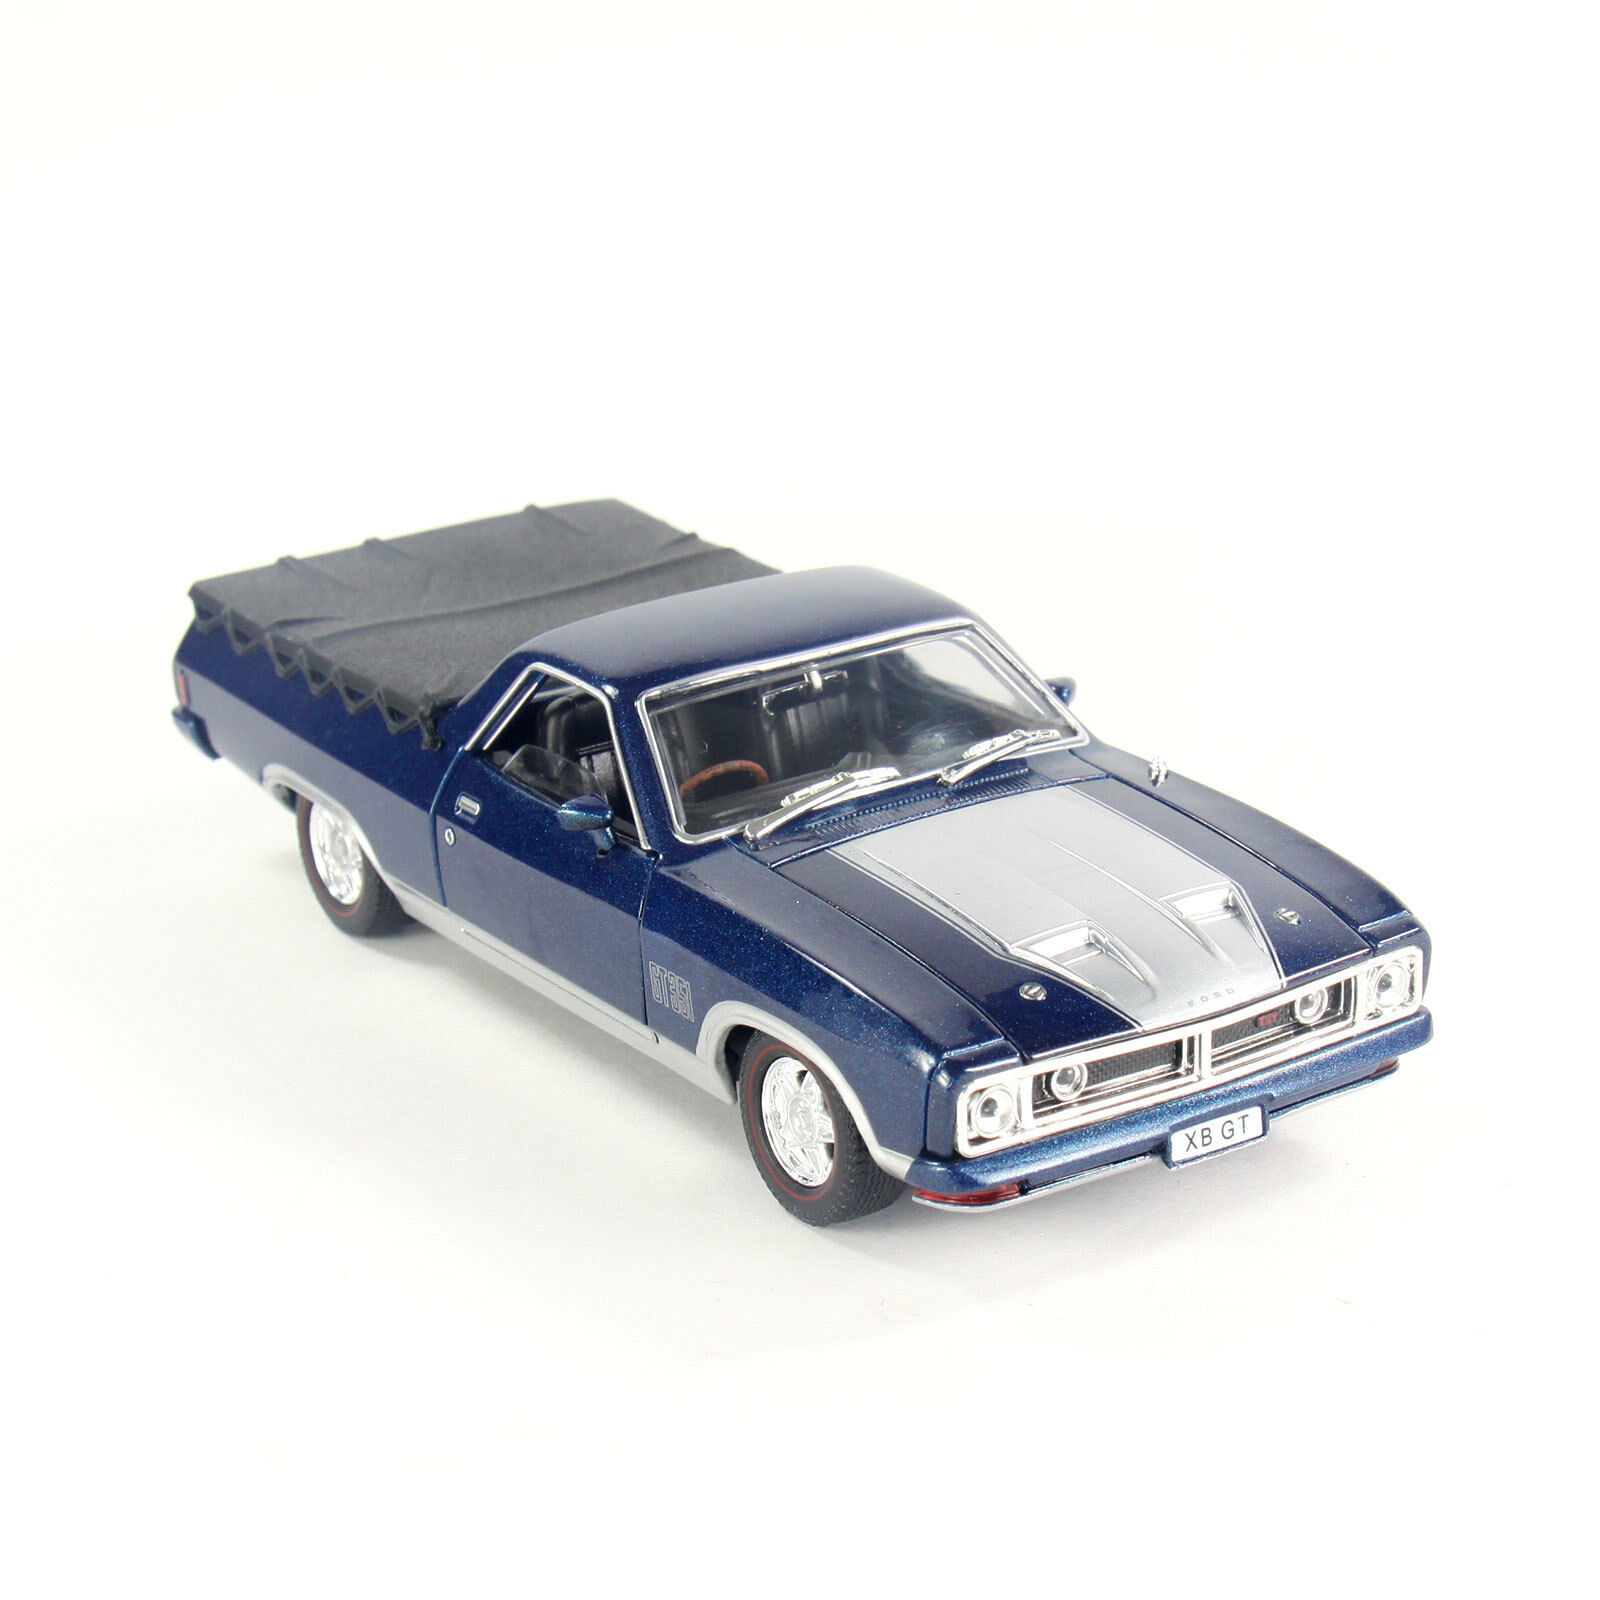 Ford Falcon XB GT 351 Ute 1 32 Scale Aussie Classic Diecast bluee Model Car